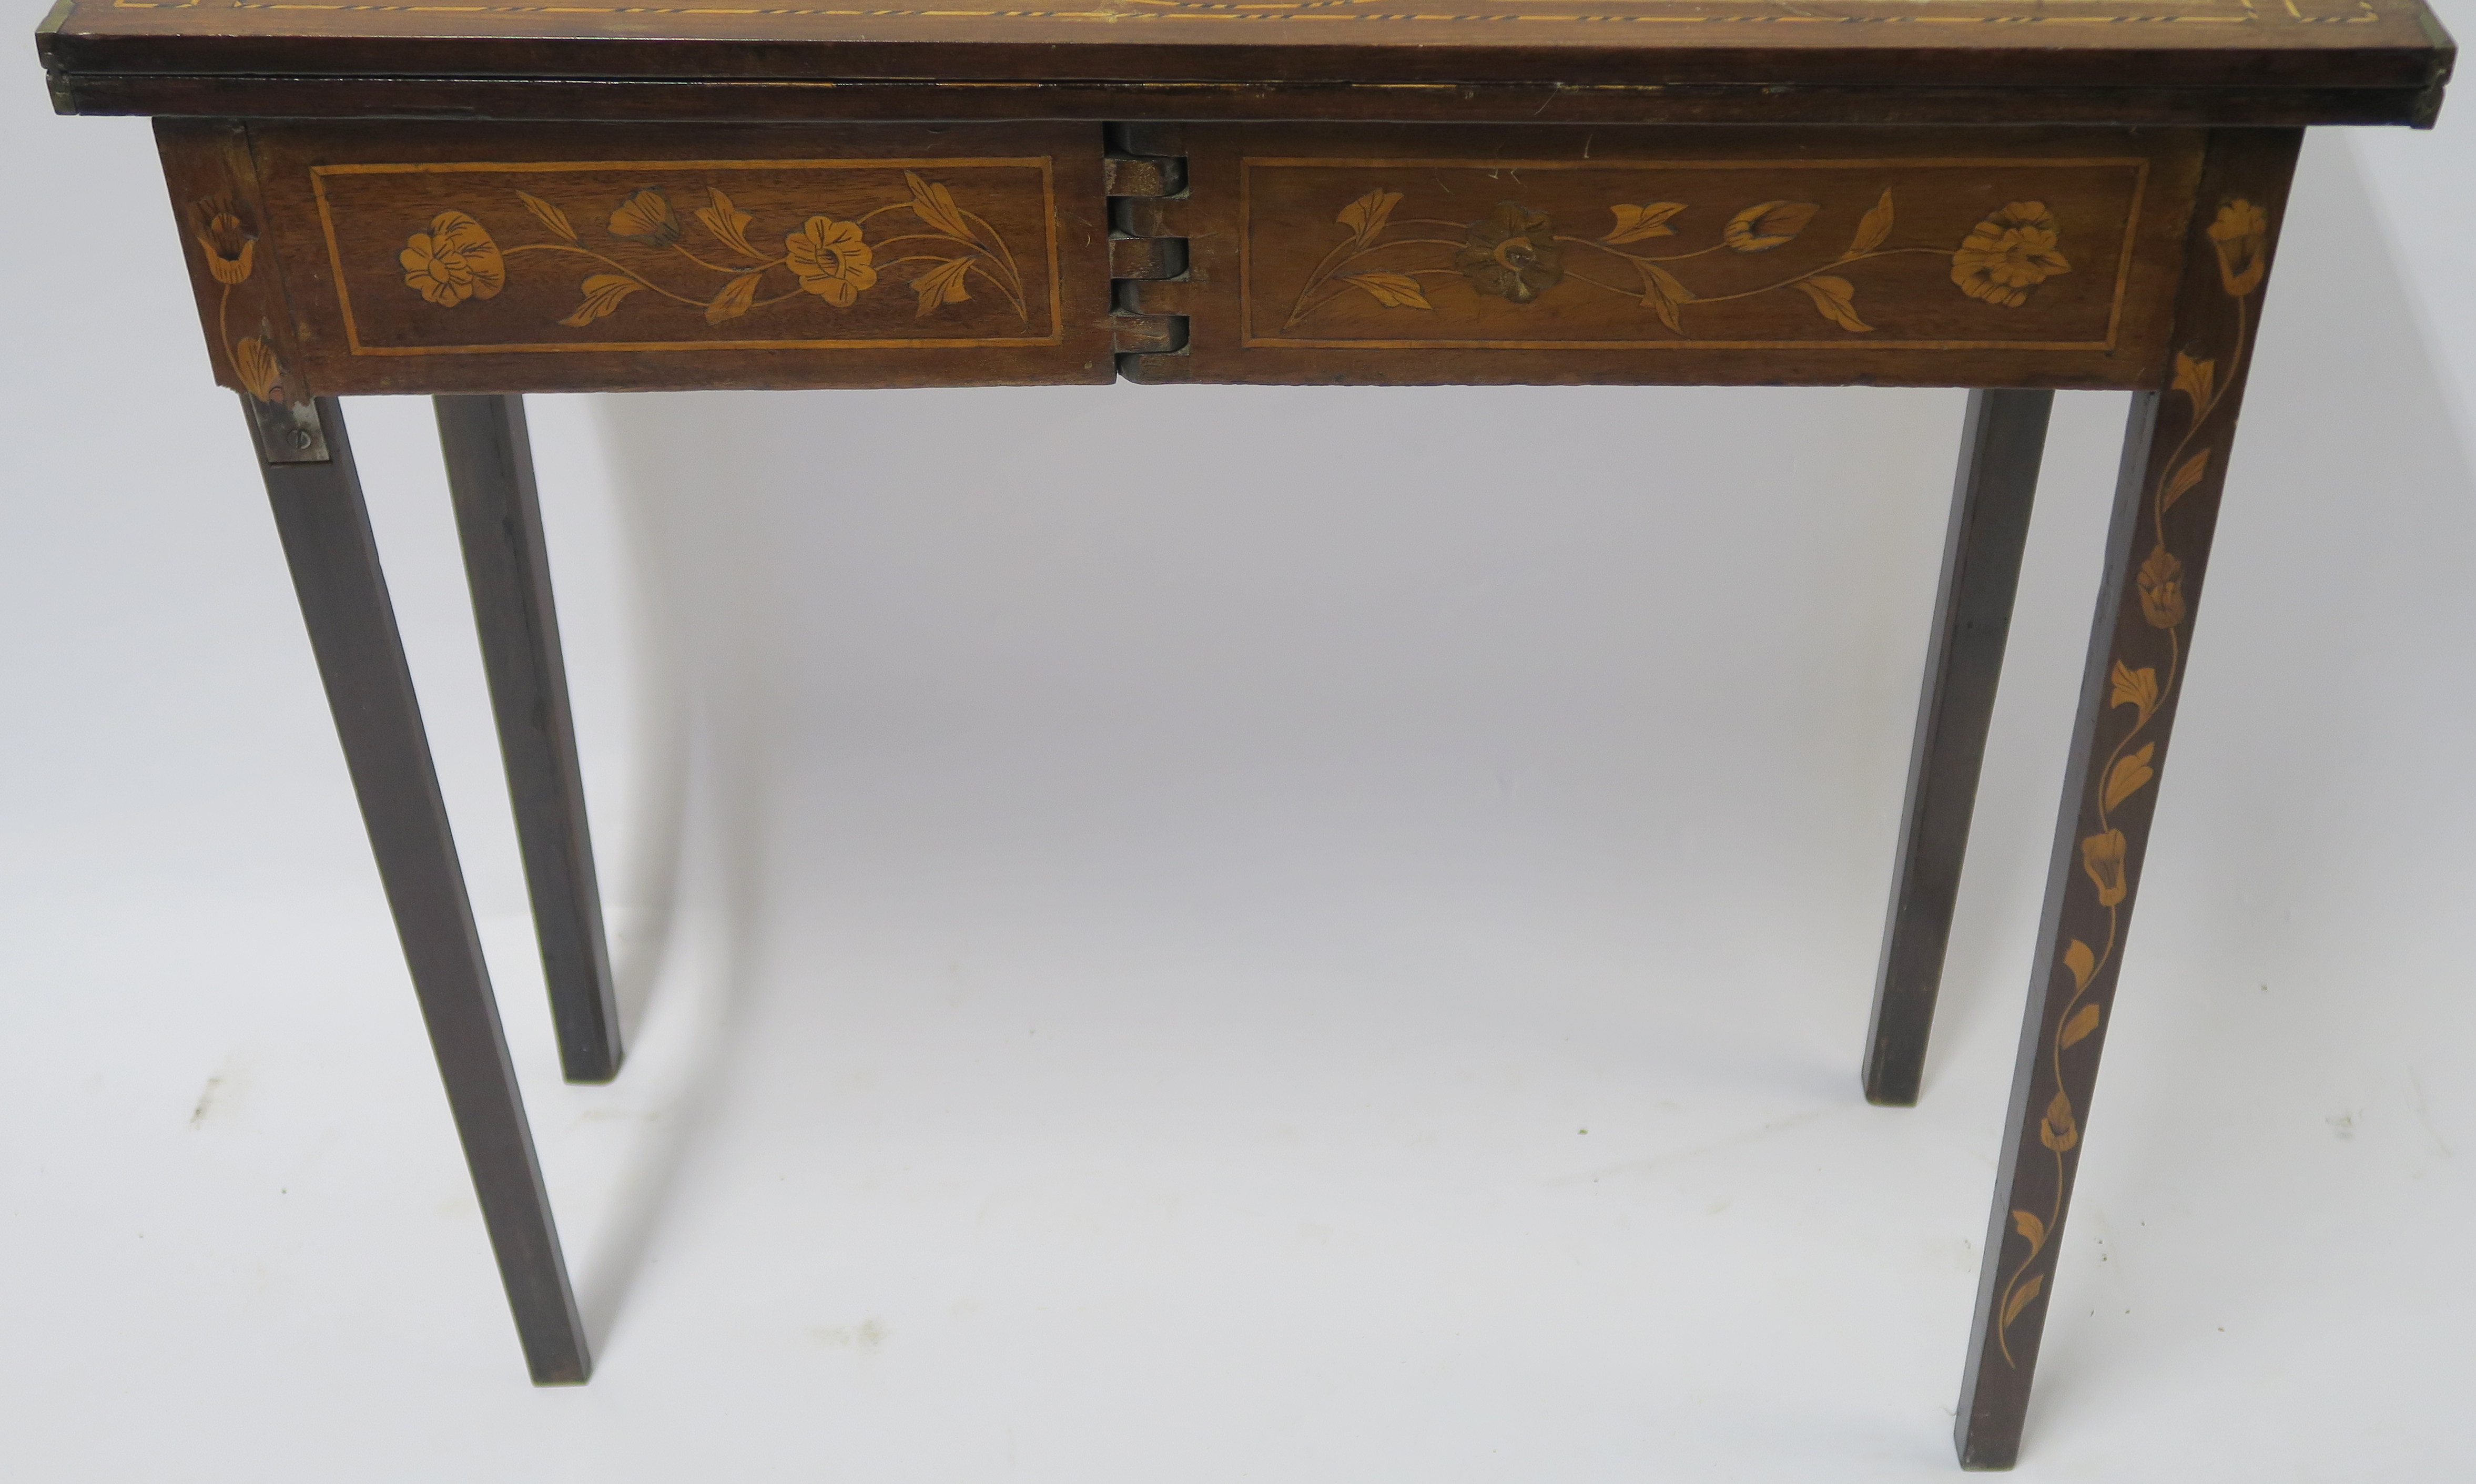 A DUTCH MARQUETRY WALNUT GAMES TABLE decorated with a basket of flowers, birds and scrolling - Image 10 of 11